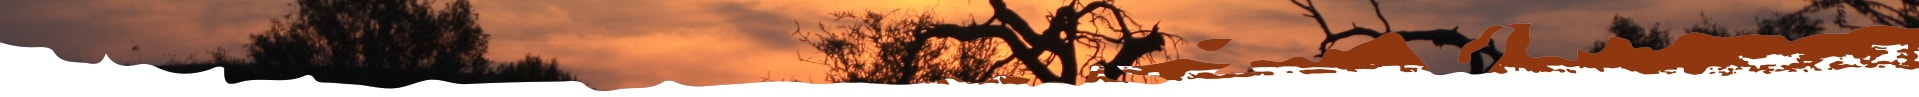 Umhlaba Environmental Consulting sunset african bush